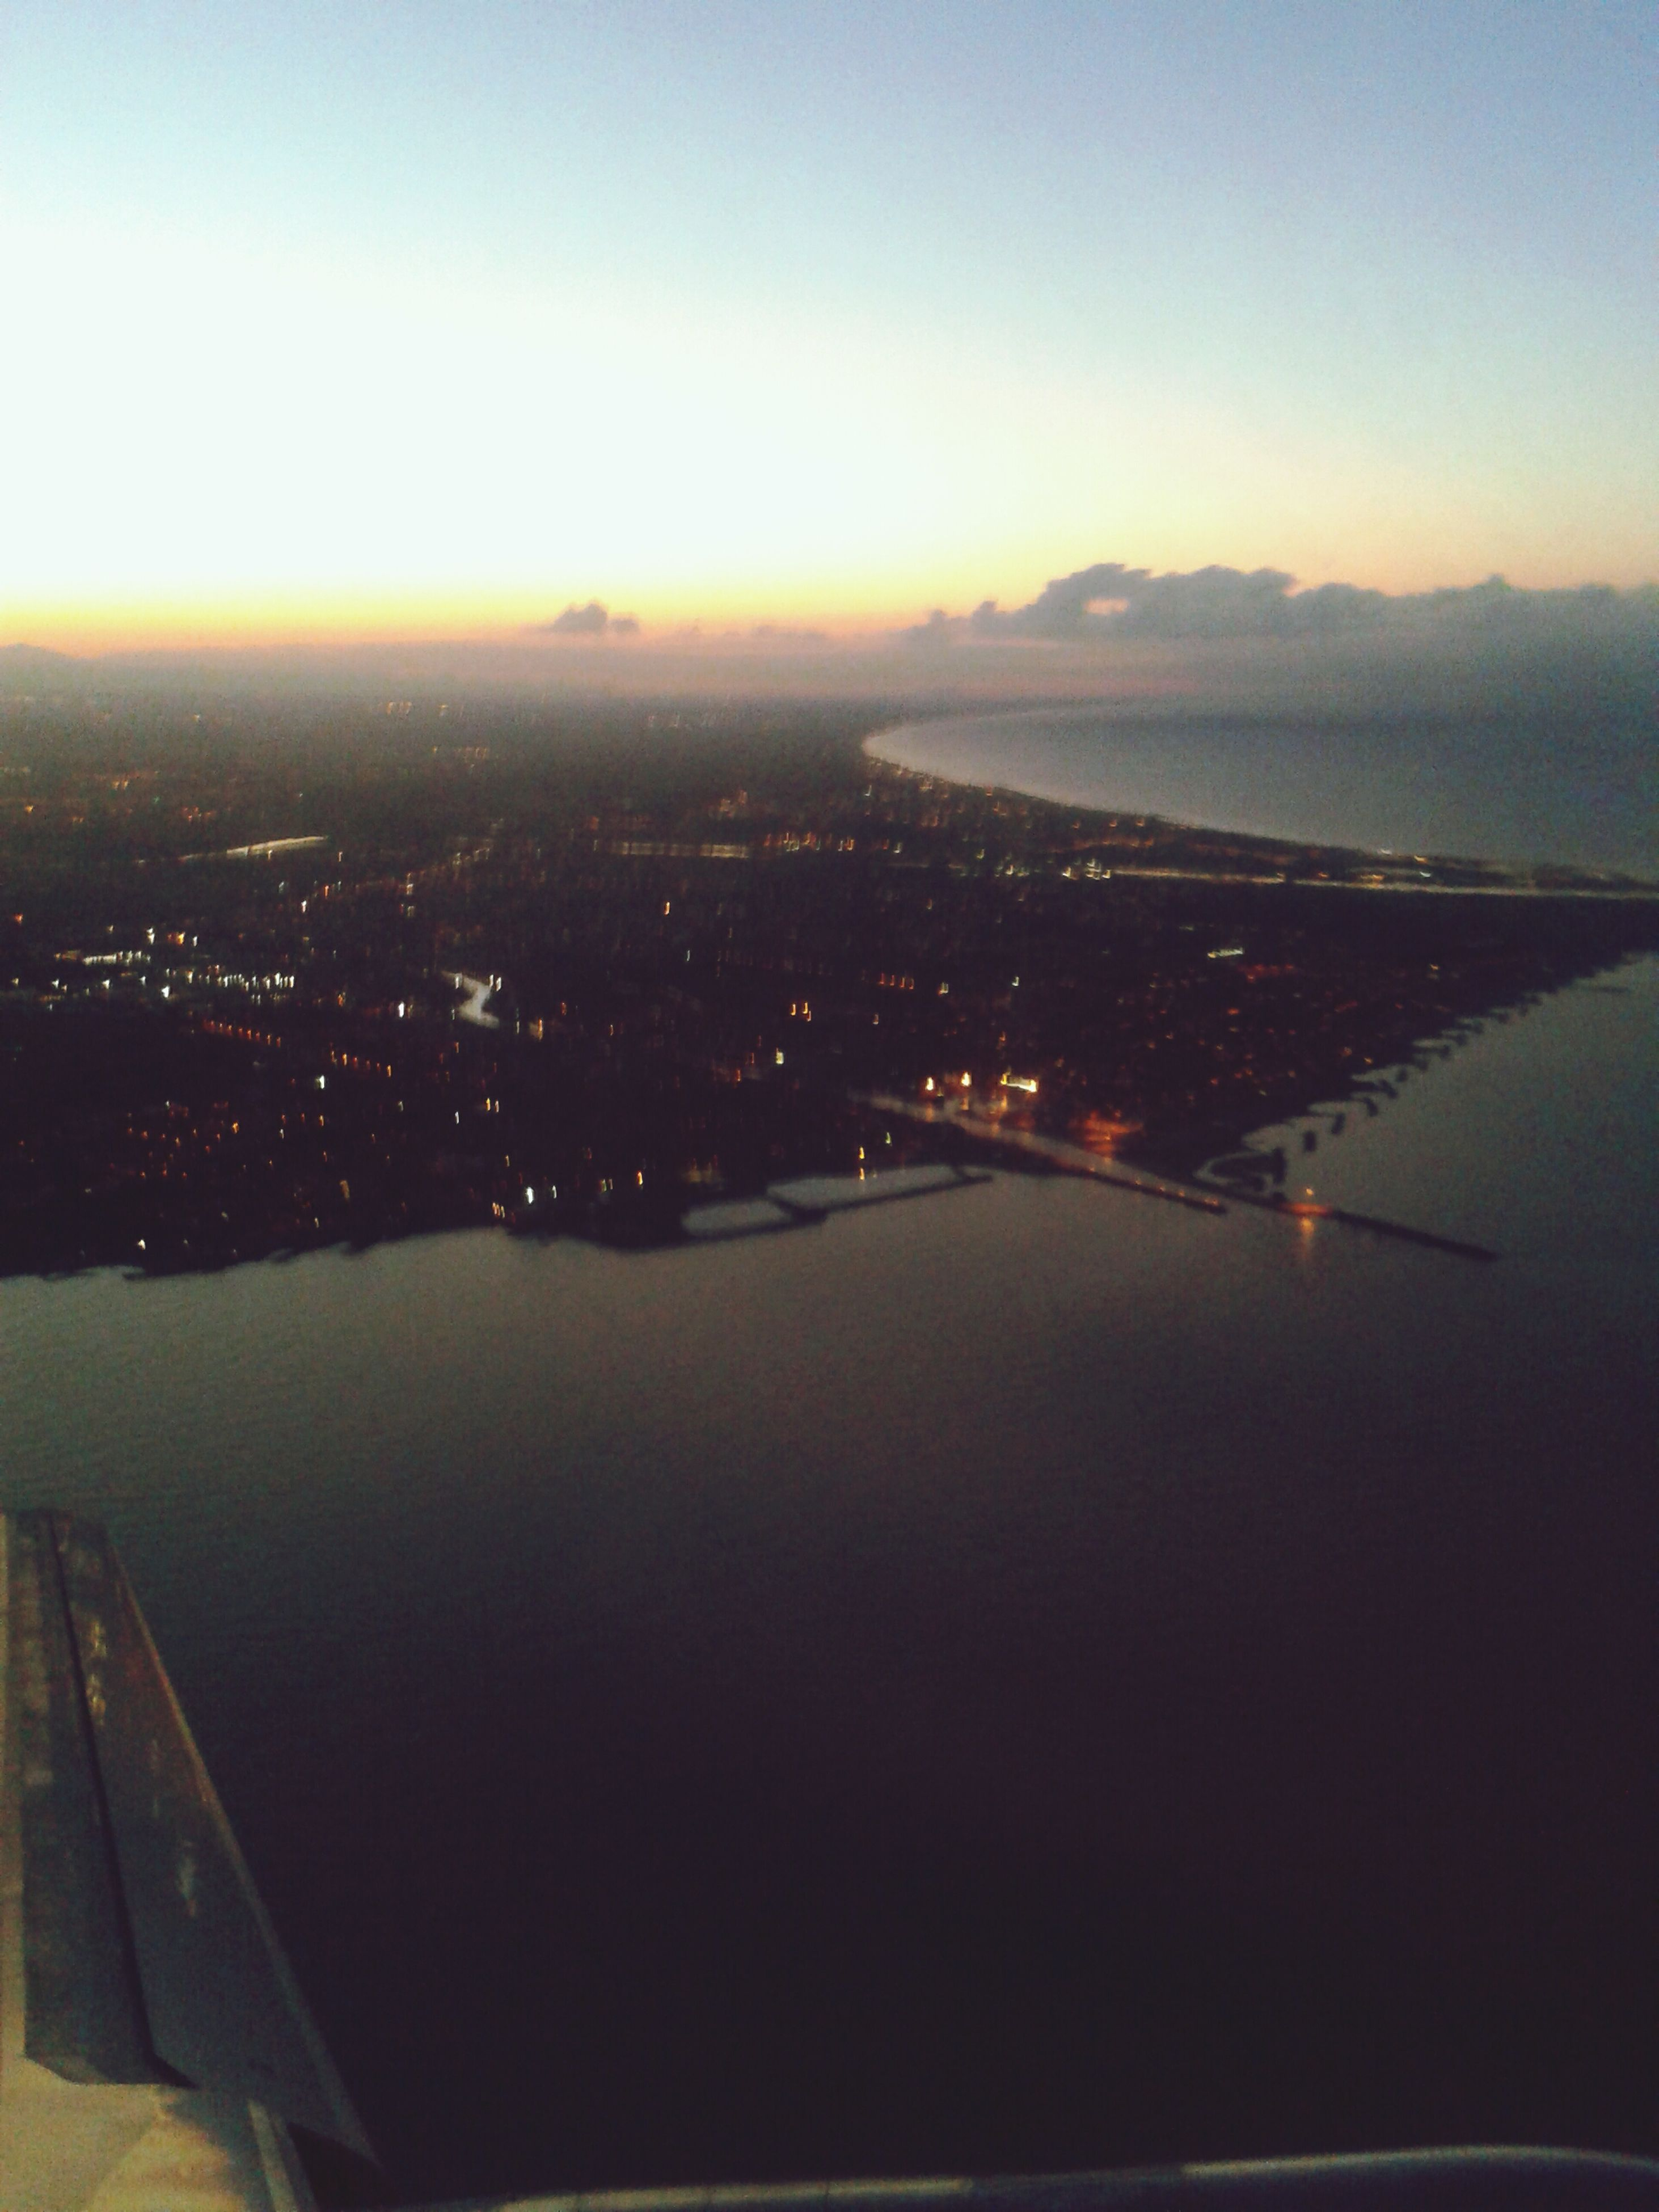 airplane, aerial view, air vehicle, transportation, sunset, sky, aircraft wing, mode of transport, landscape, cityscape, flying, part of, city, cropped, clear sky, scenics, built structure, copy space, architecture, high angle view